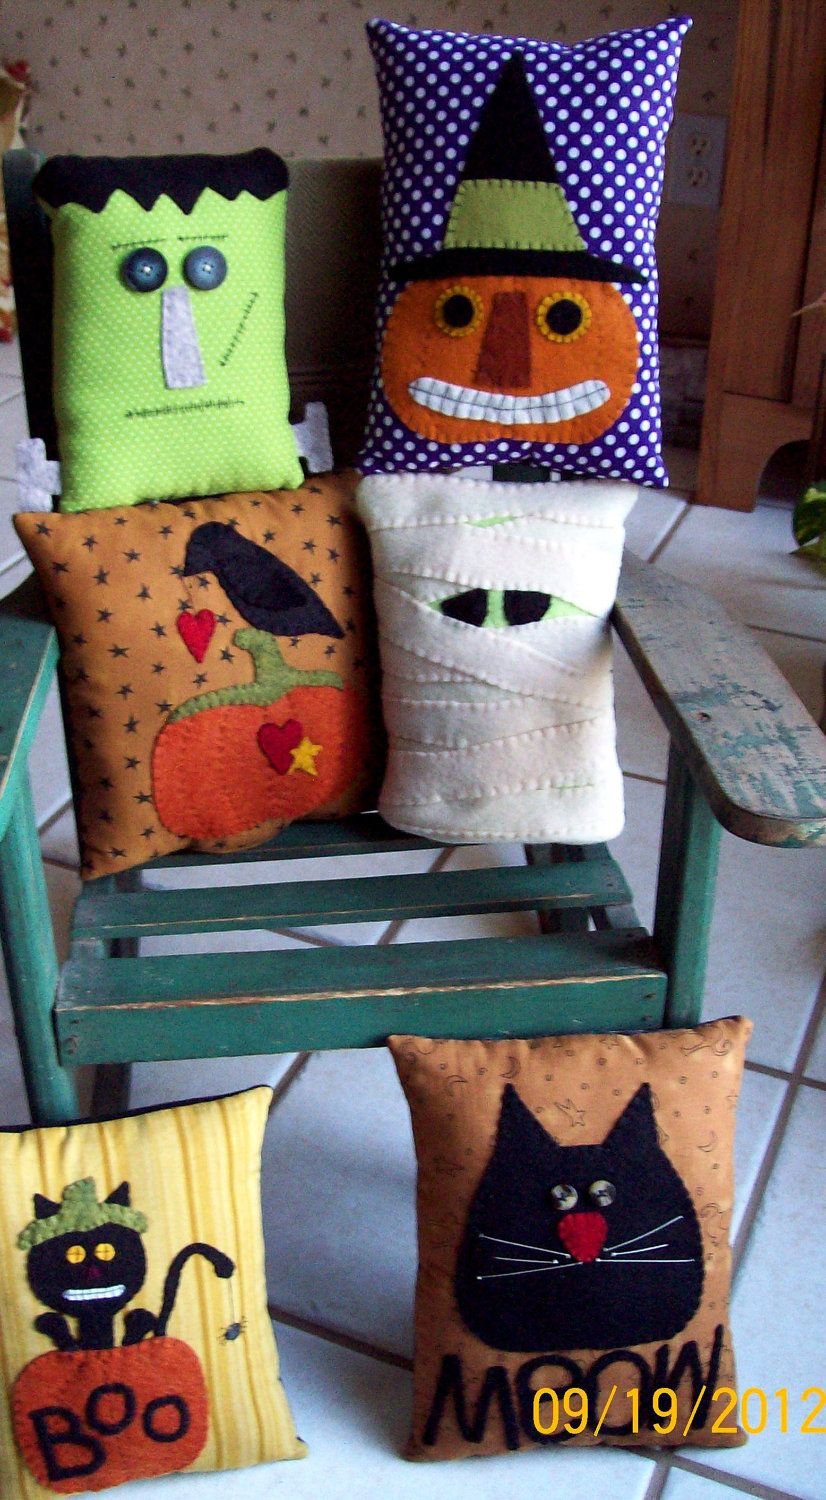 PRiM MUMMY PiLLoW  OrNiE HaLLoWeeN BaSH  5-inch x 8-inches WooL FeLT PeNNyRuG HaNDMaDe  PiLLoW.